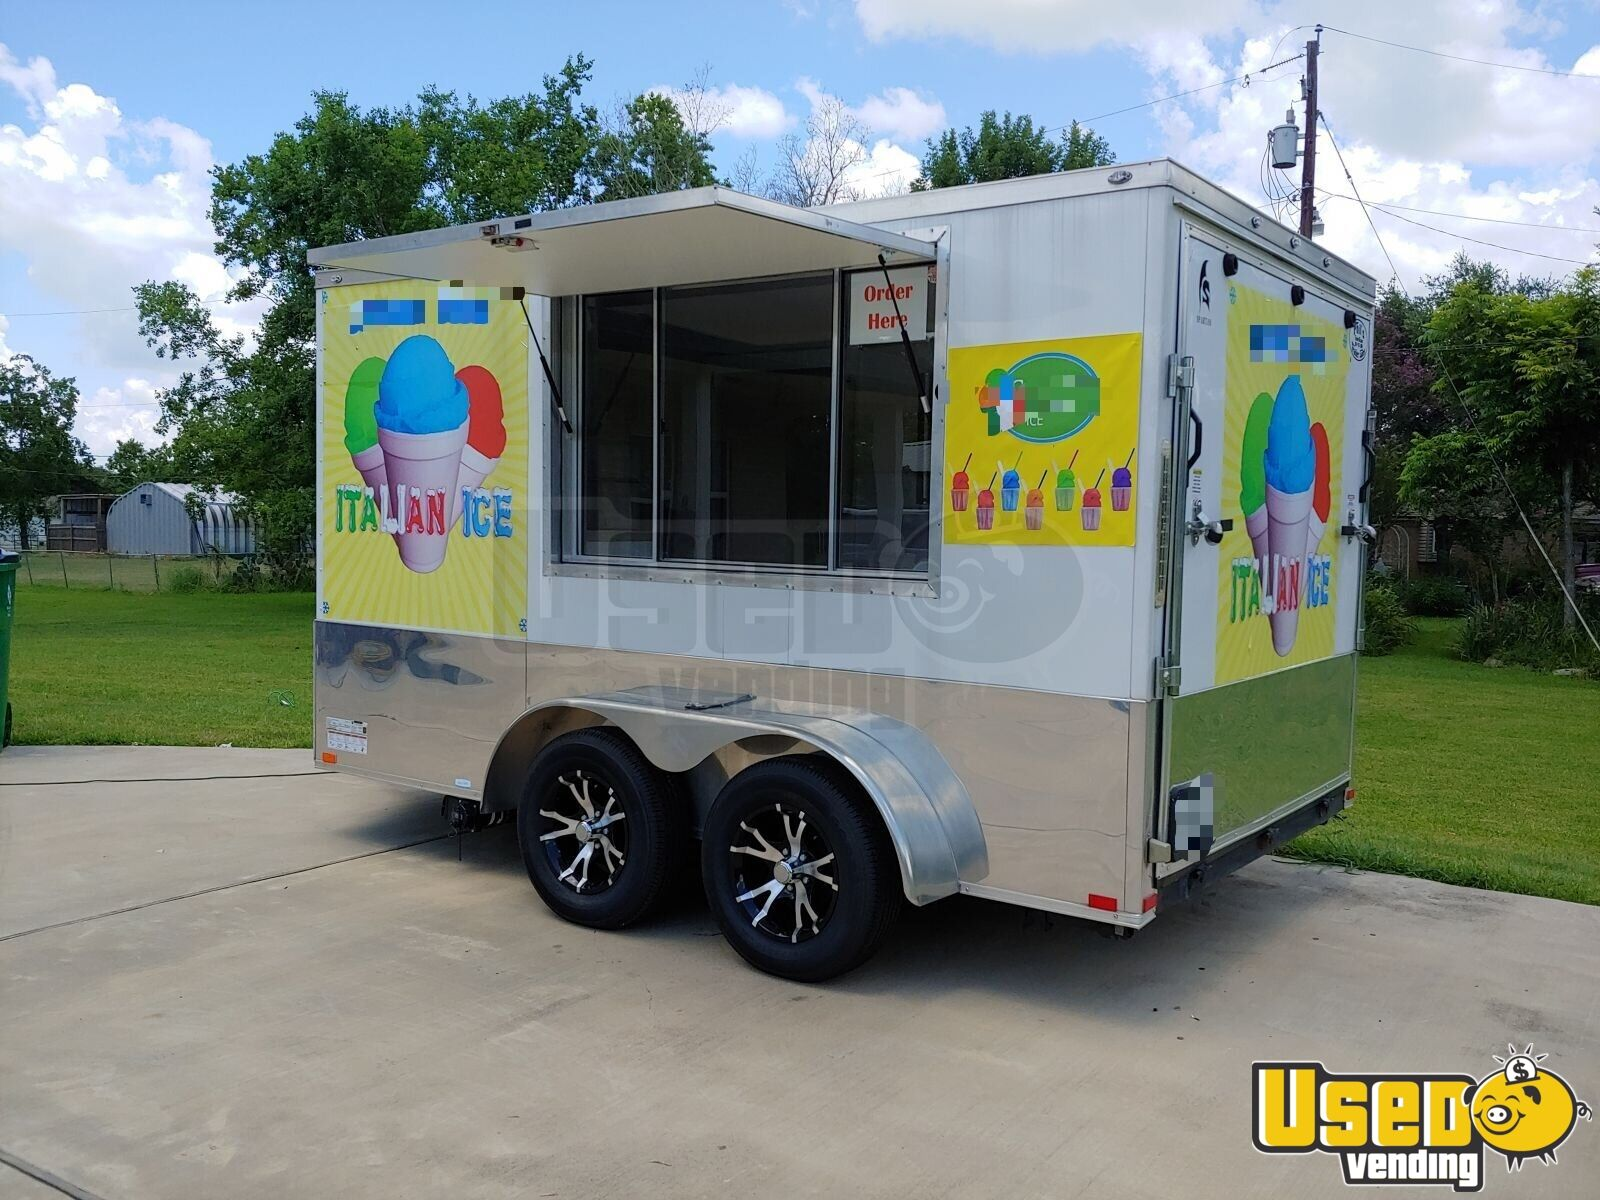 2018 Spartan 7x12 Ice Cream Truck Air Conditioning Texas for Sale - 2